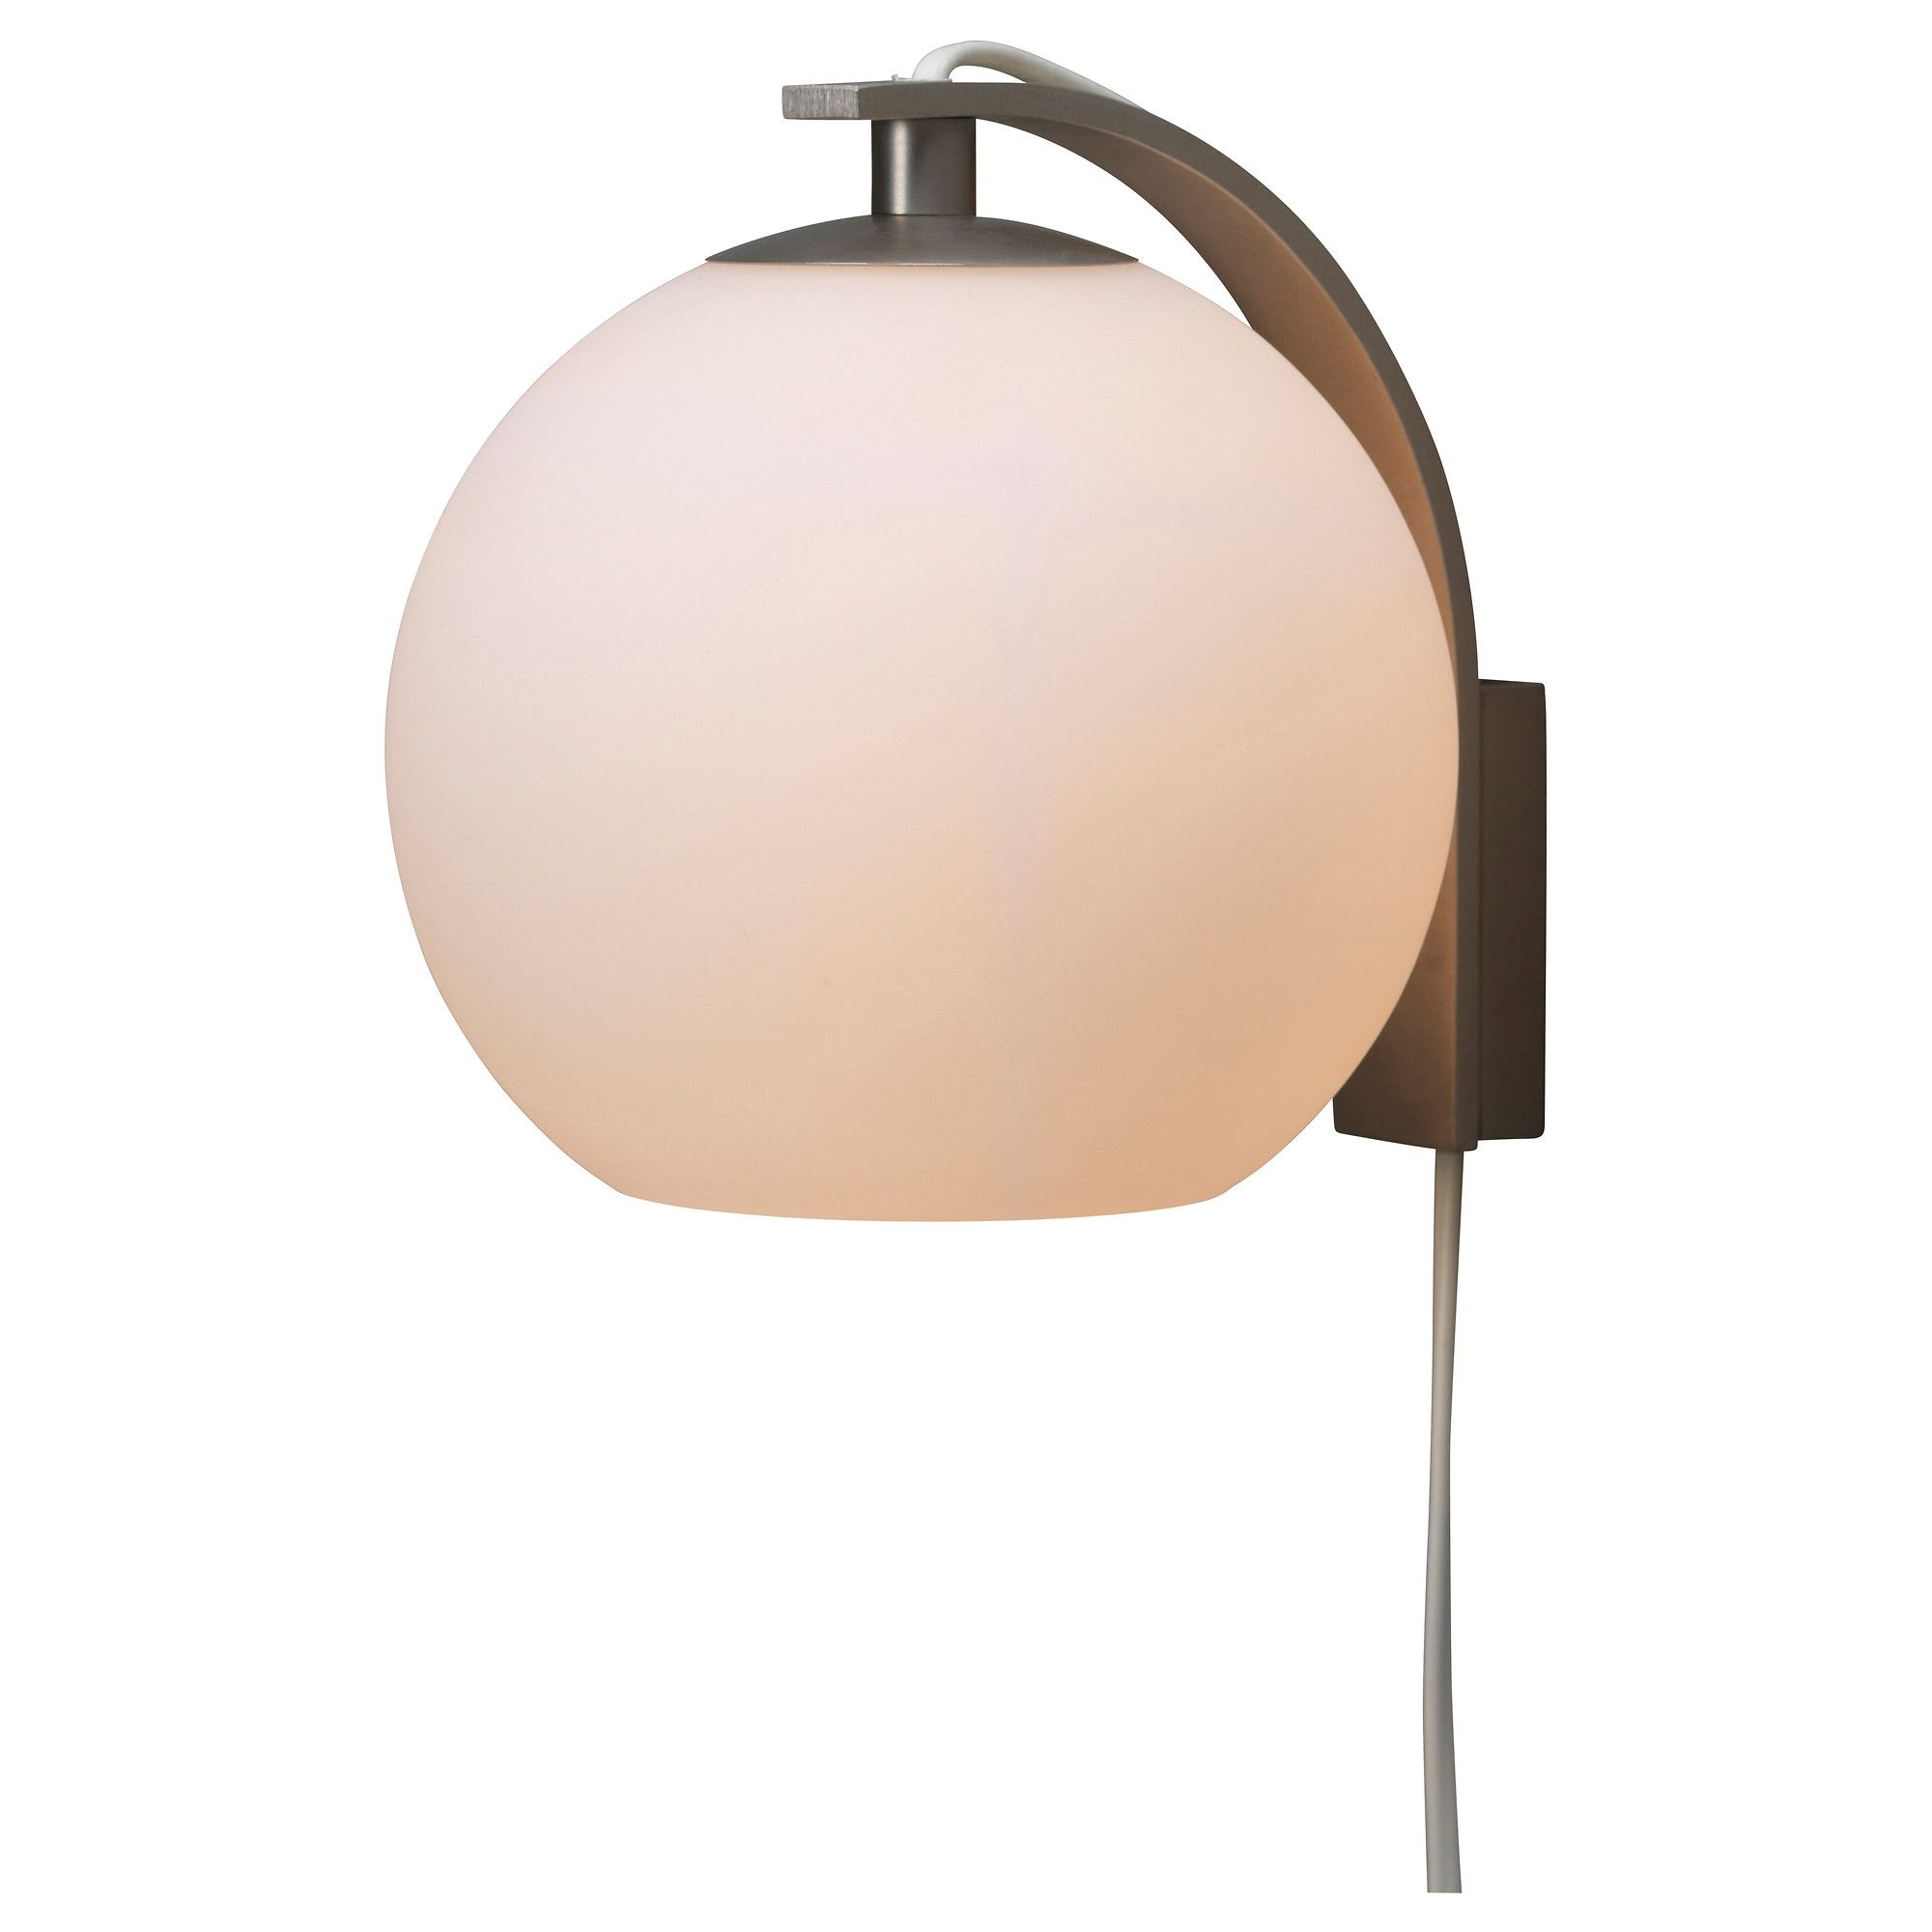 Ikea Us Furniture And Home Furnishings Ikea Wall Lights Sconce Lamp Night Table Lamps